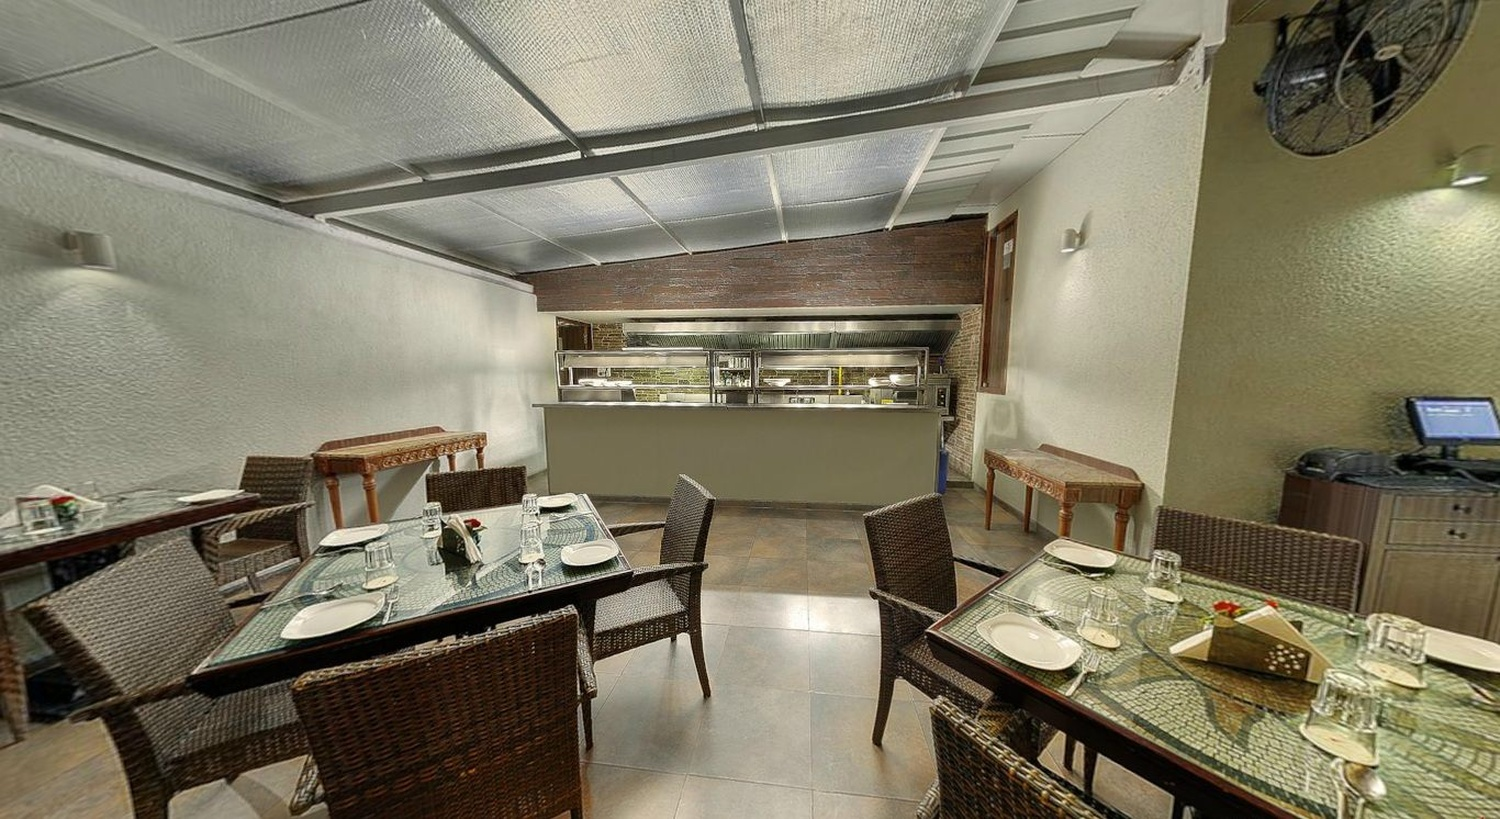 Juhu residency boutique hotel juhu mumbai banquet hall for Best boutique hotels in mumbai